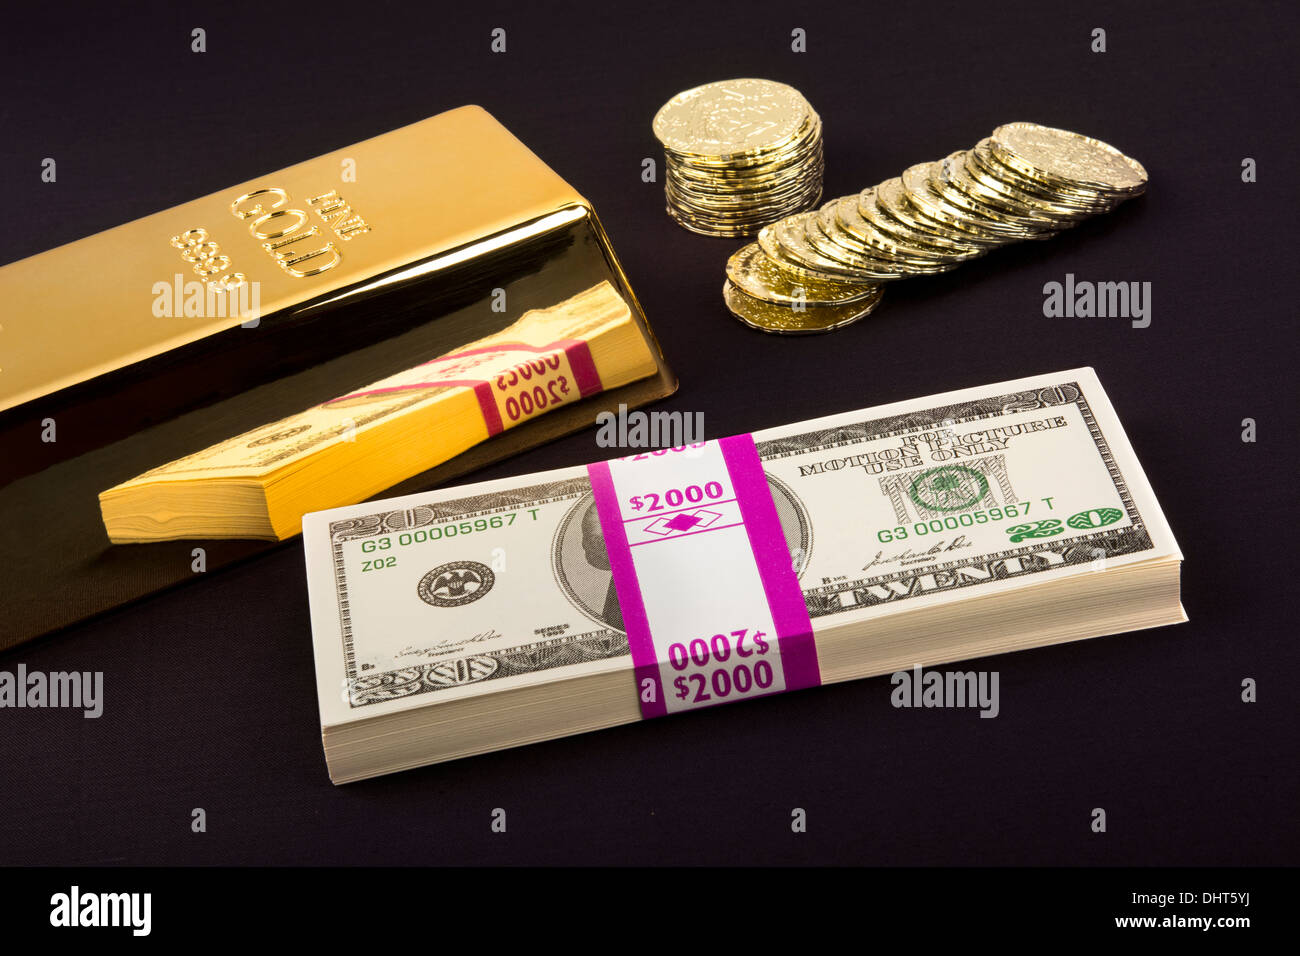 Gold coins and a gold bar with a pile of American cash - Stock Image